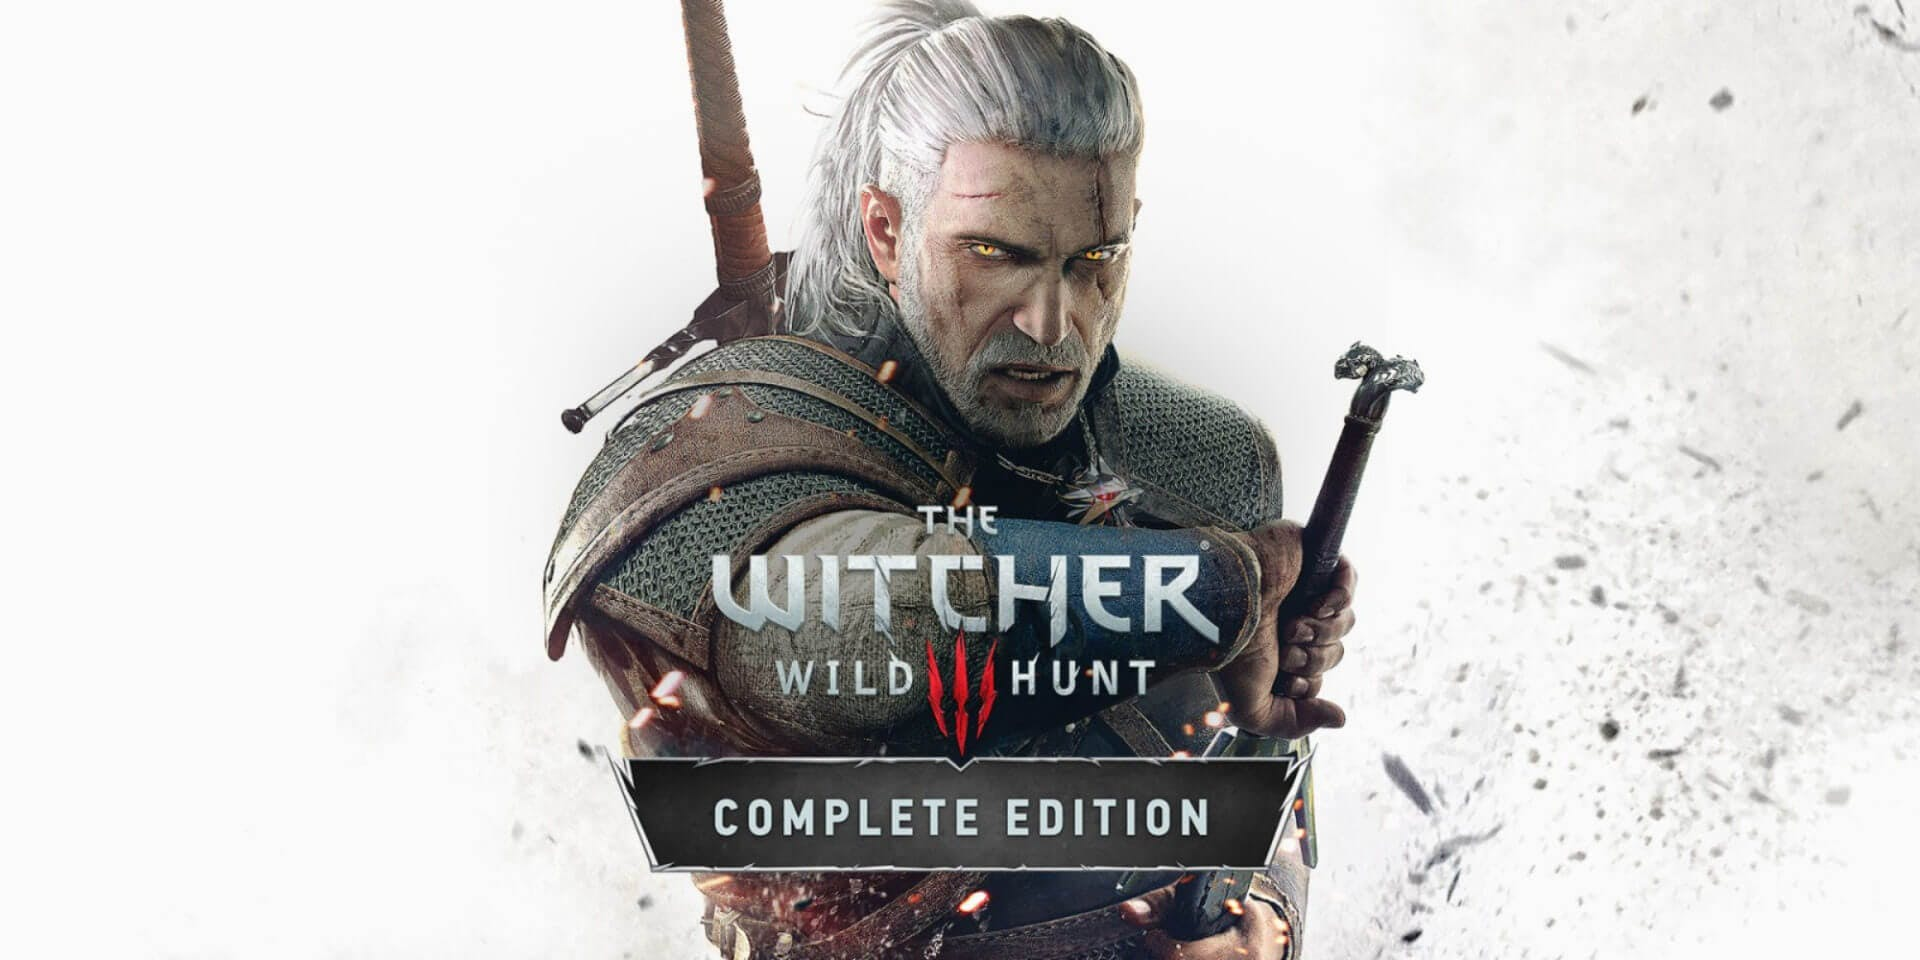 upcoming video games october 2019 the witcher 3 wild hunt complete edition